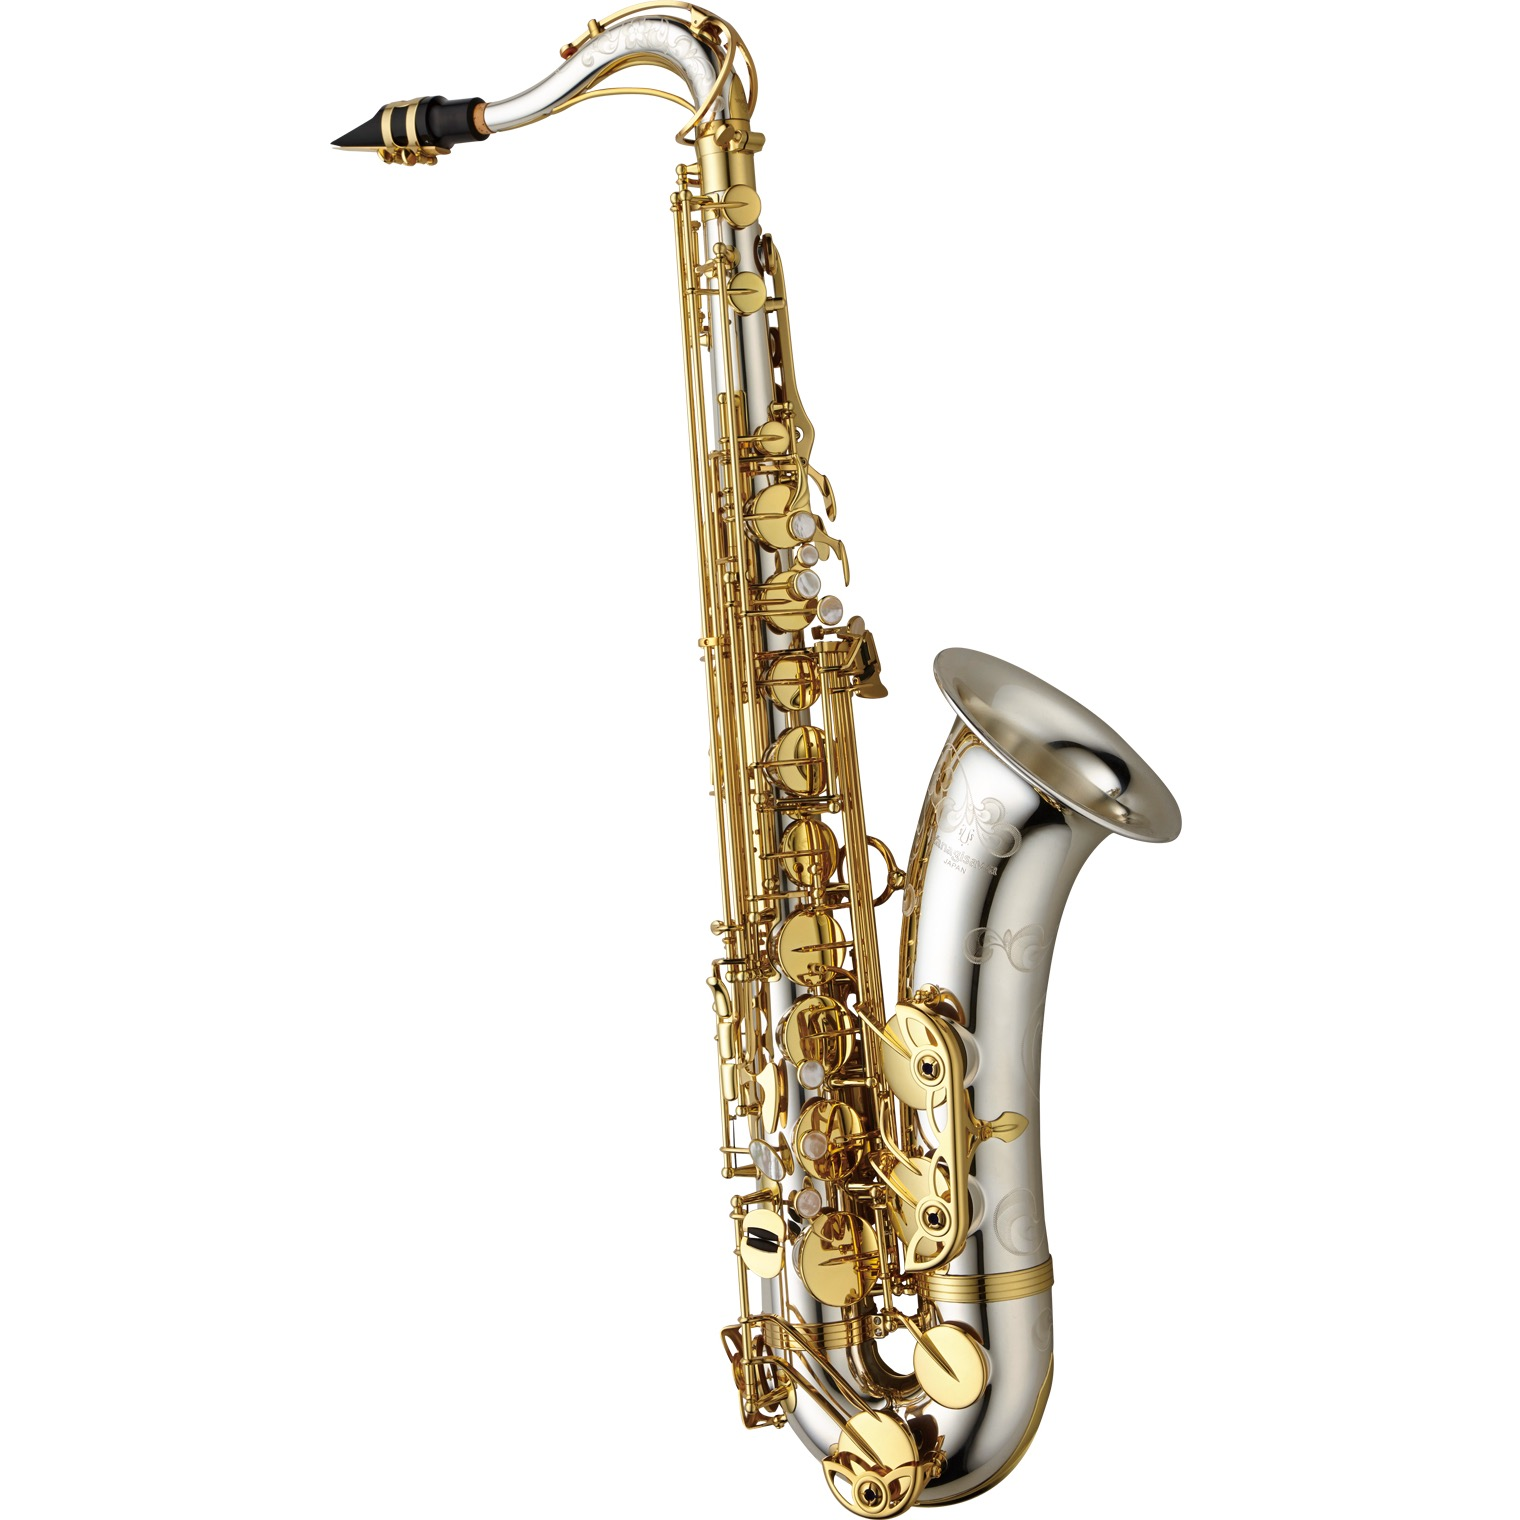 Yanagisawa TWO35 Elite Tenor Saxophone - Sterling Silver Bell, Body, and Neck